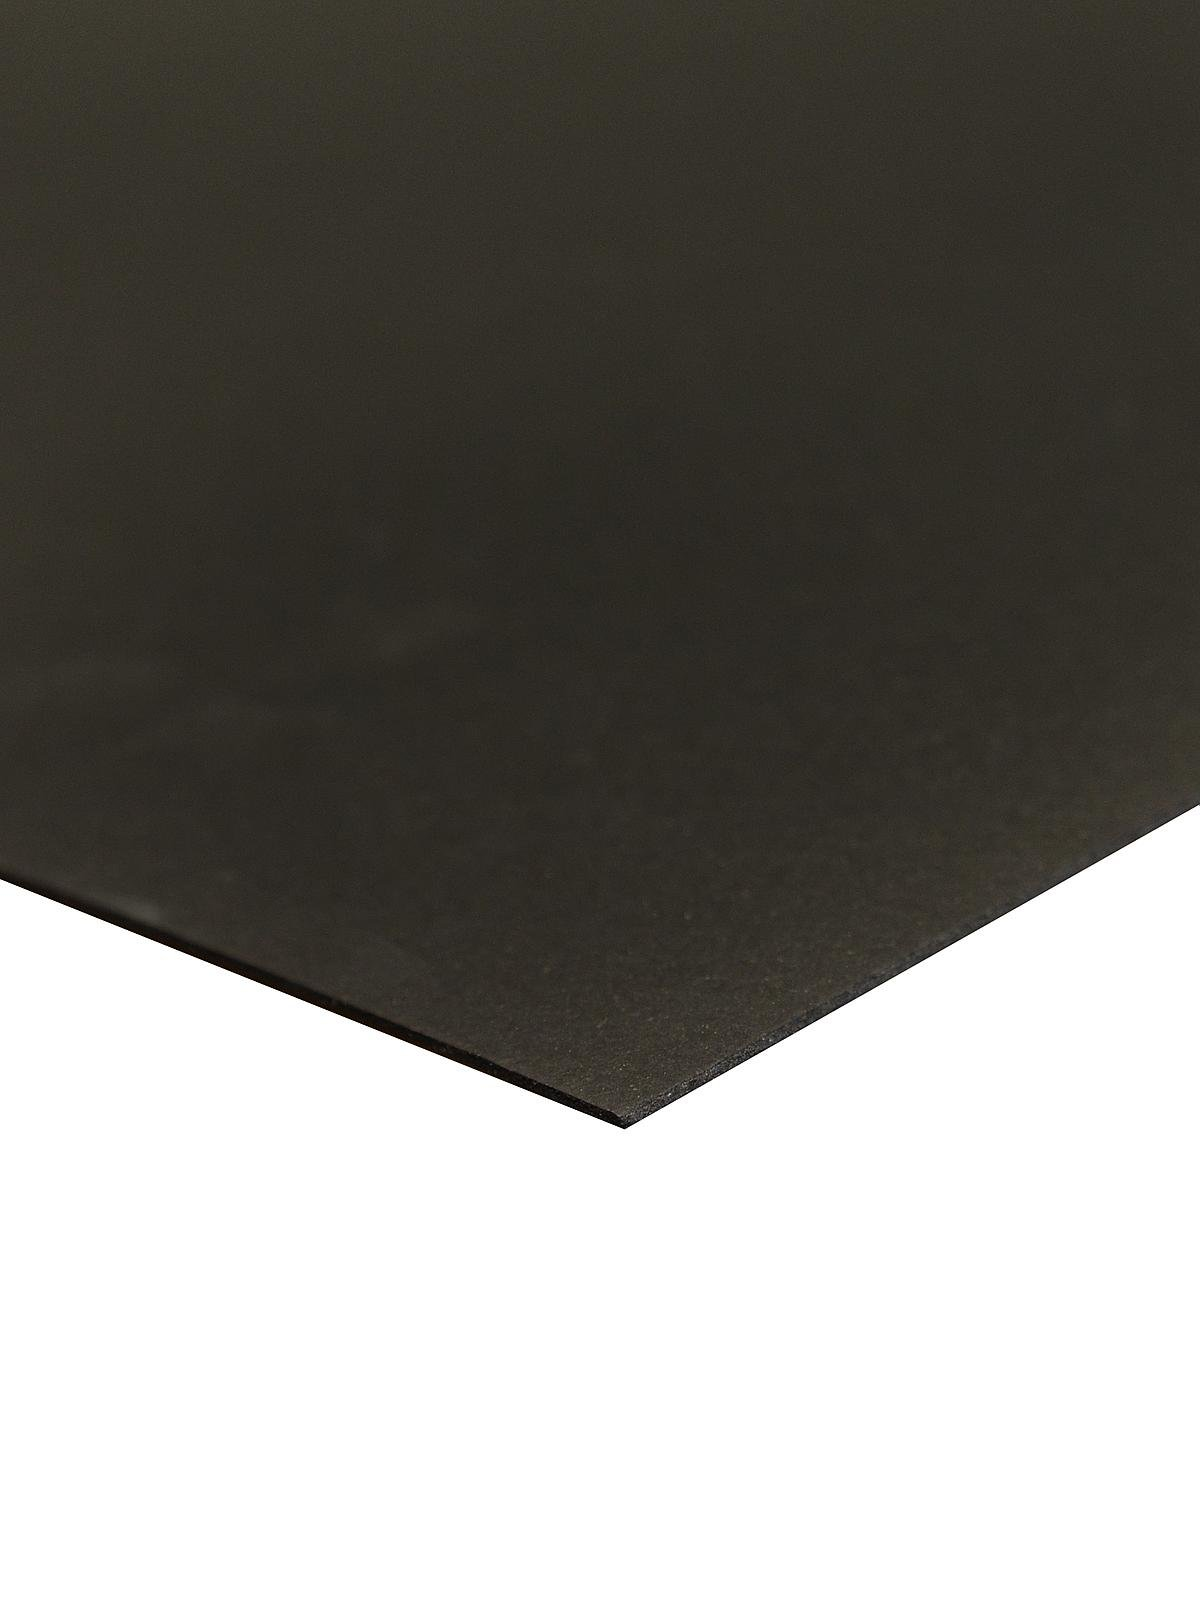 Crescent #6008 Ultra Black Smooth Board 11''x14'' (100 sheets) by Ultra Black Smooth Display Boards